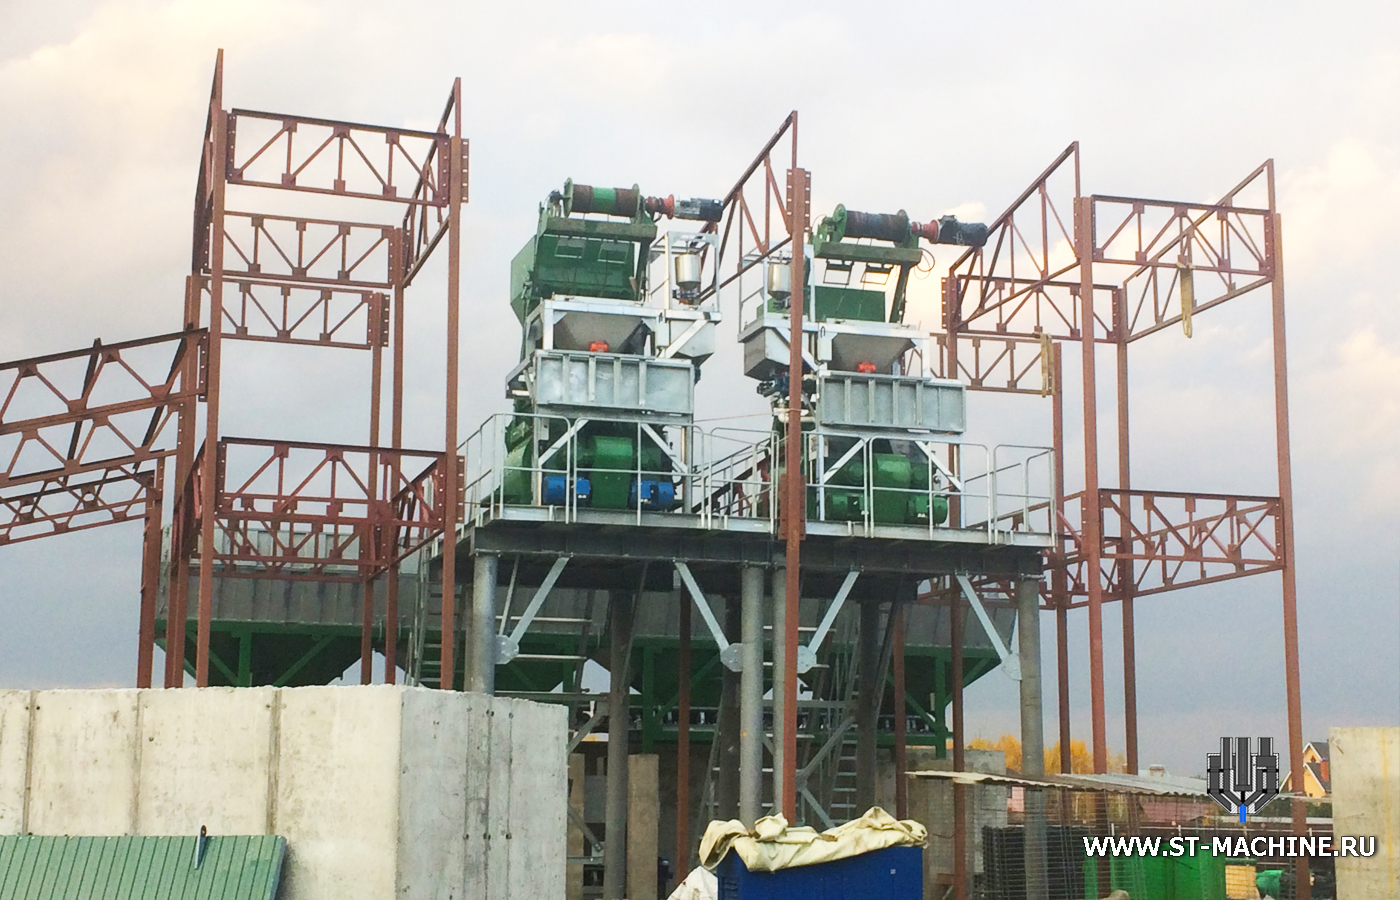 two shaft concrete mixers stmachine plants from russia.jpg